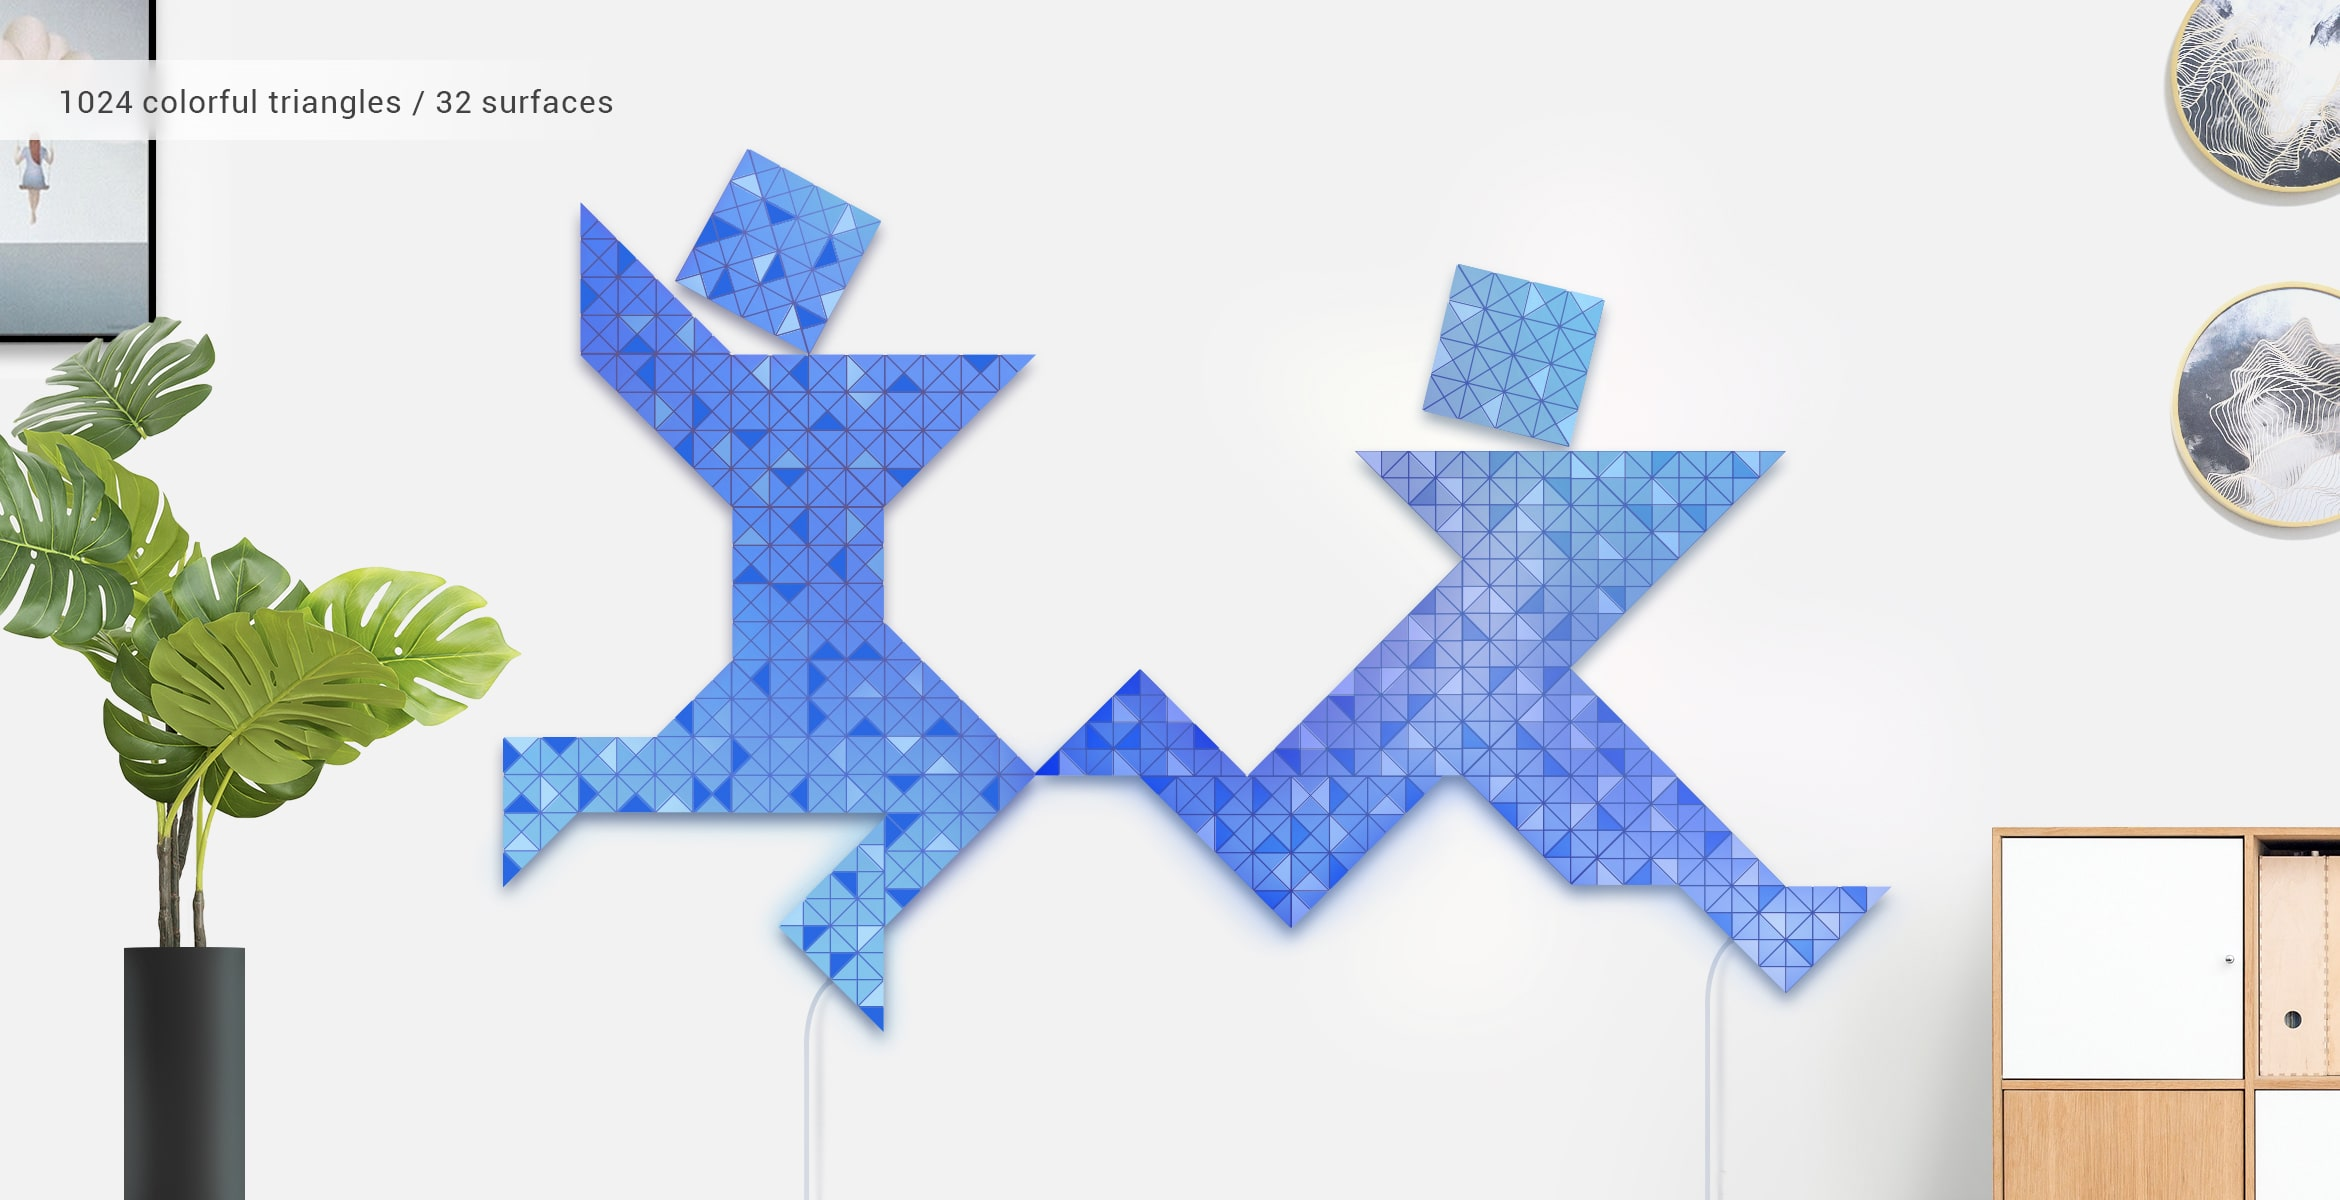 Two-people shape, assembled from 32 smart light surfaces, in impressive Tangram art style, complements room's interior